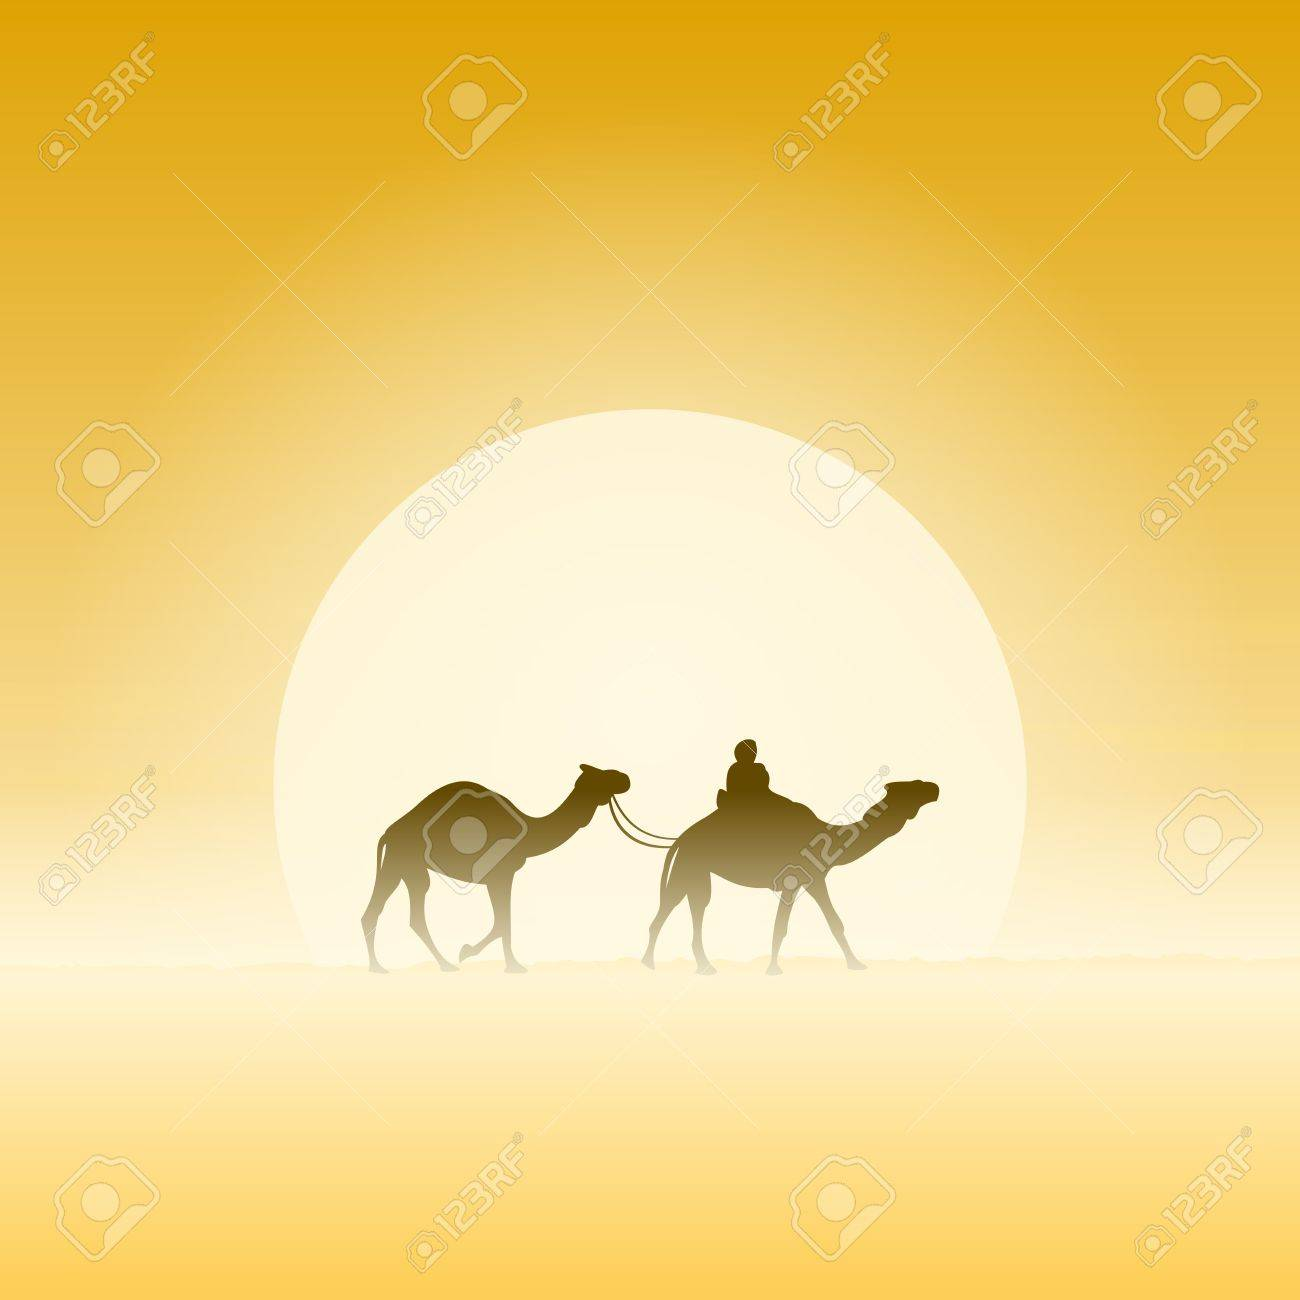 Two Camels and Sun Stock Vector - 15782592